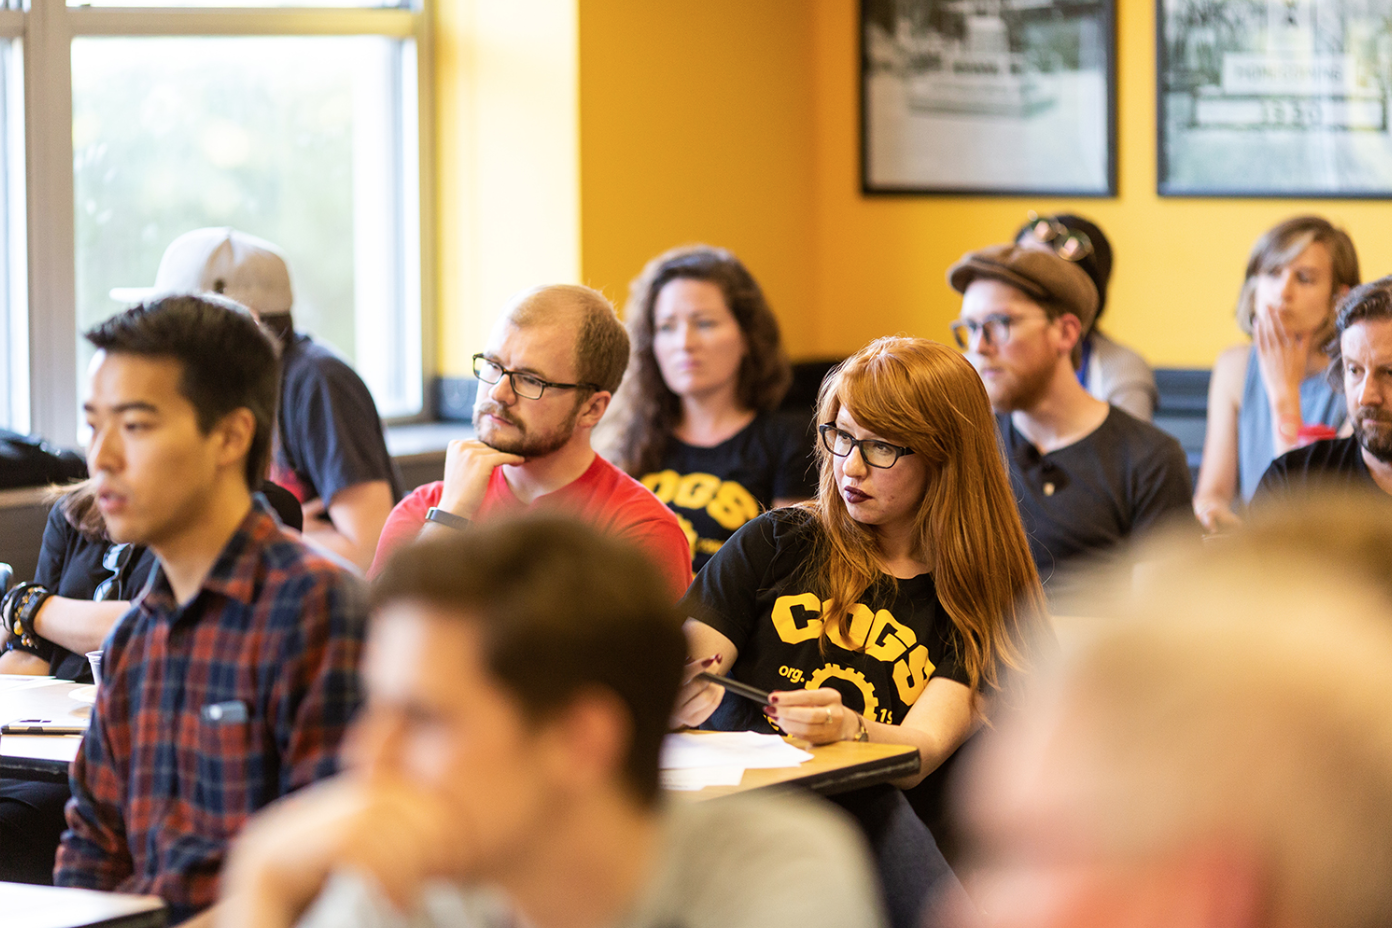 Ashley Dorn, a history graduate student and TA listens to a speaker at a meeting to discuss how to save the UI Labor Center at the IMU on Wednesday, Aug., 29, 2018.